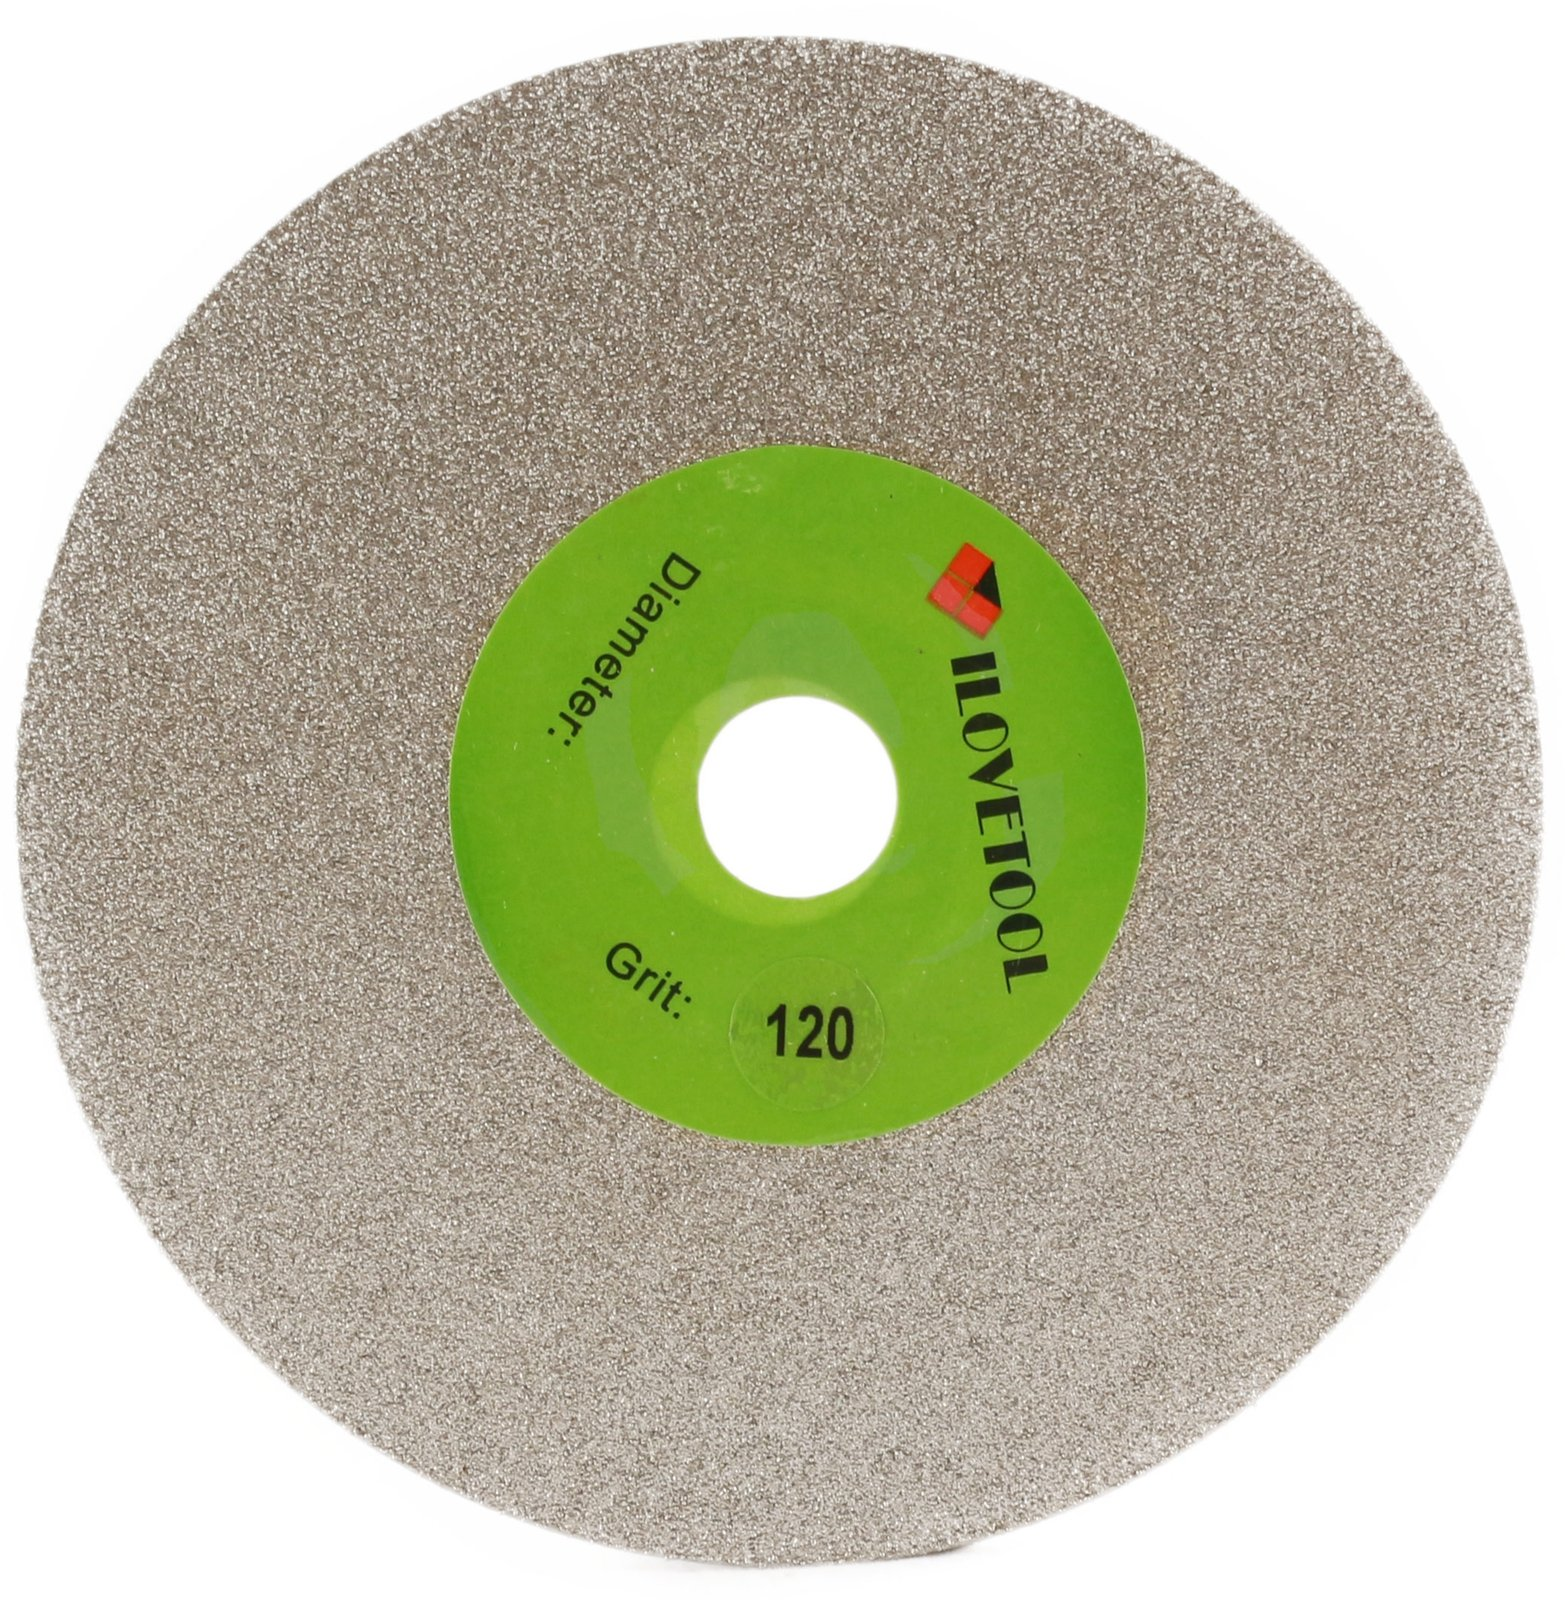 ILOVETOOL 250mm Electroplated Diamond Discs Abrasive Wheel 120 Grit Stone Tools